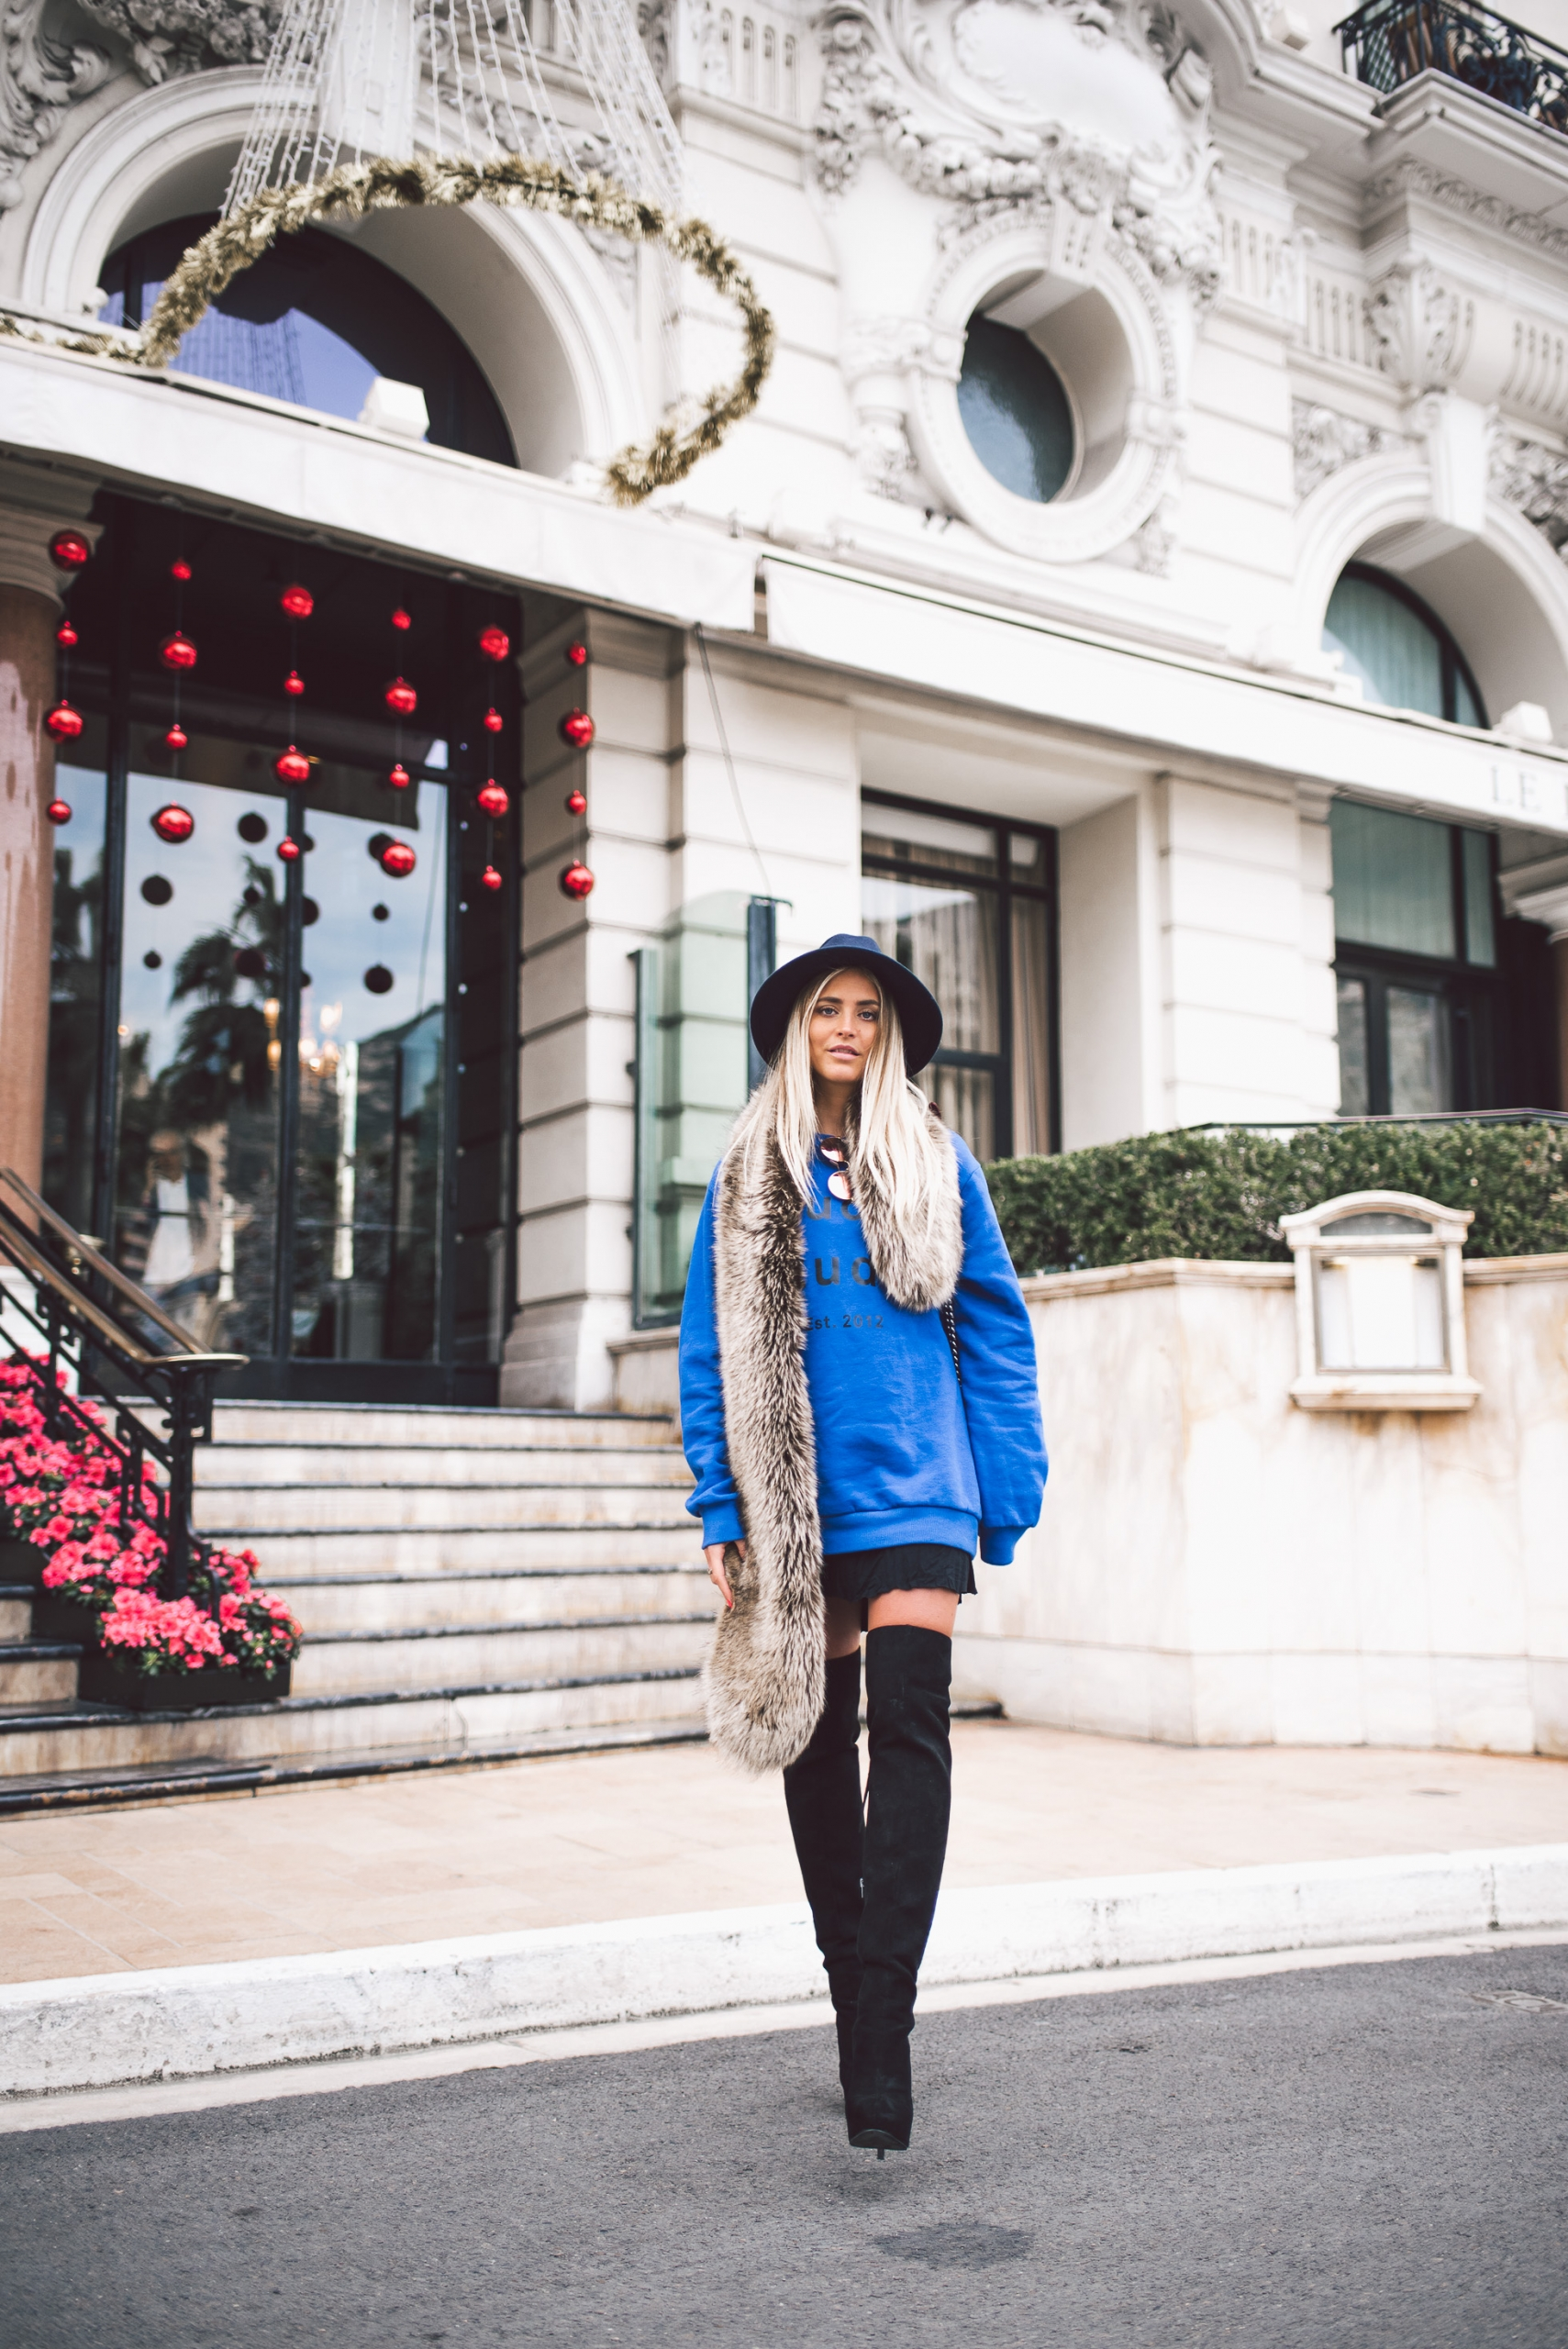 One killer way to style thigh high boots is by wearing them with an oversized graphic print sweater and a statement scarf or faux fur collar like this one, styled by Janni Deler. Hat/Scarf: Primark, Shoes: Janni Shoes. One killer way to style thigh high boots is by wearing them with an oversized graphic print sweater and a statement scarf or faux fur collar like this one, styled by Janni Deler. Hat/Scarf: Primark, Shoes: Janni Shoes.